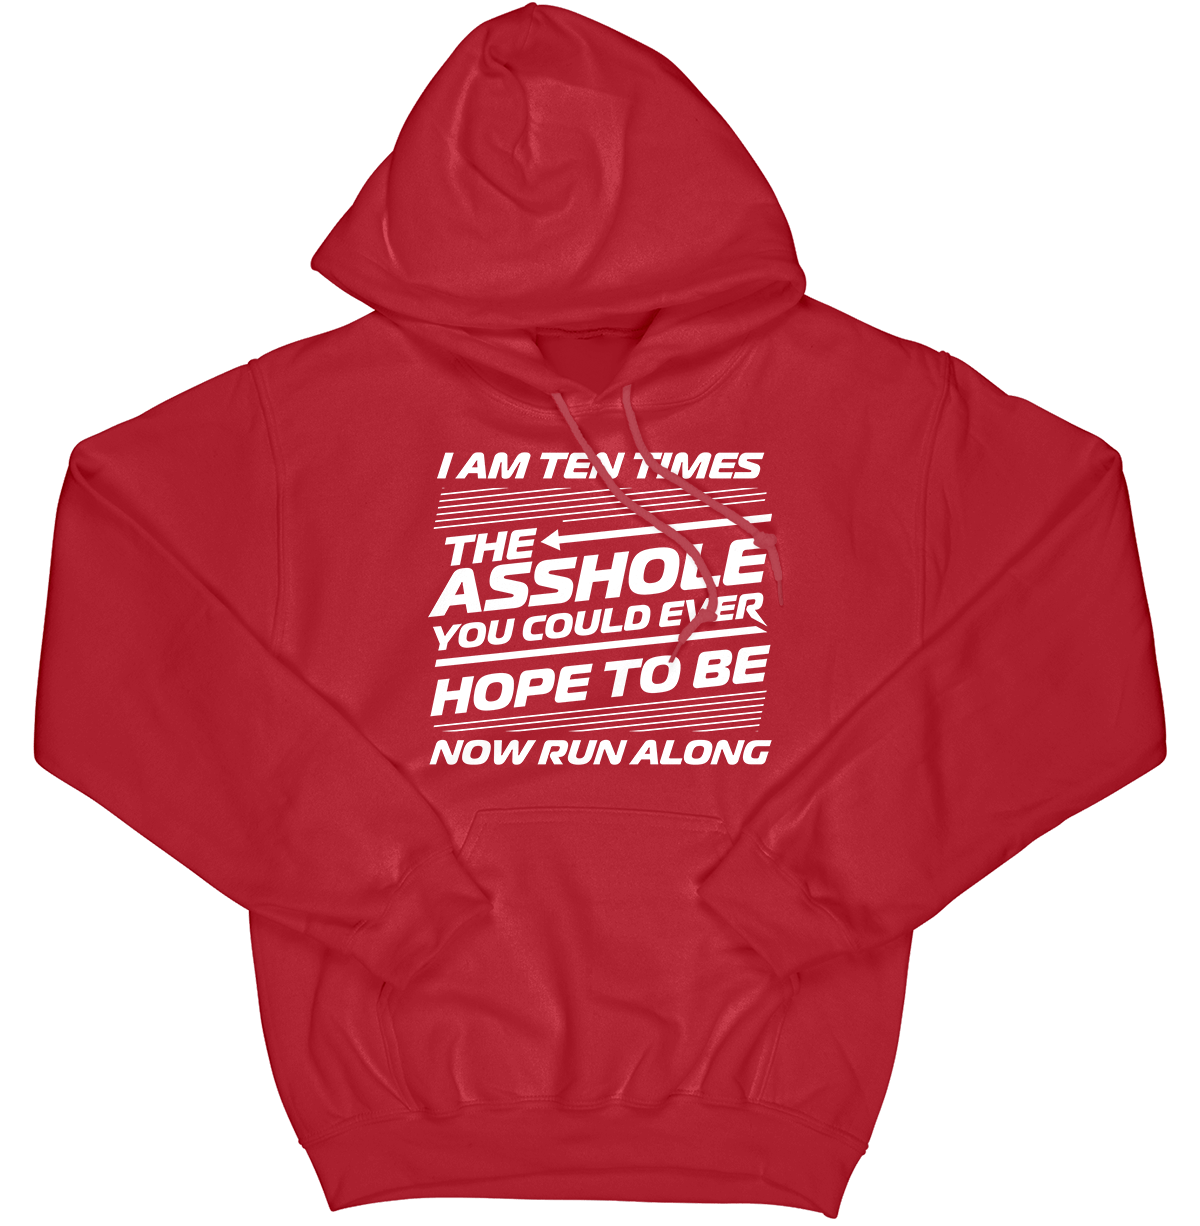 I Am Ten Times the Asshole Hoodie